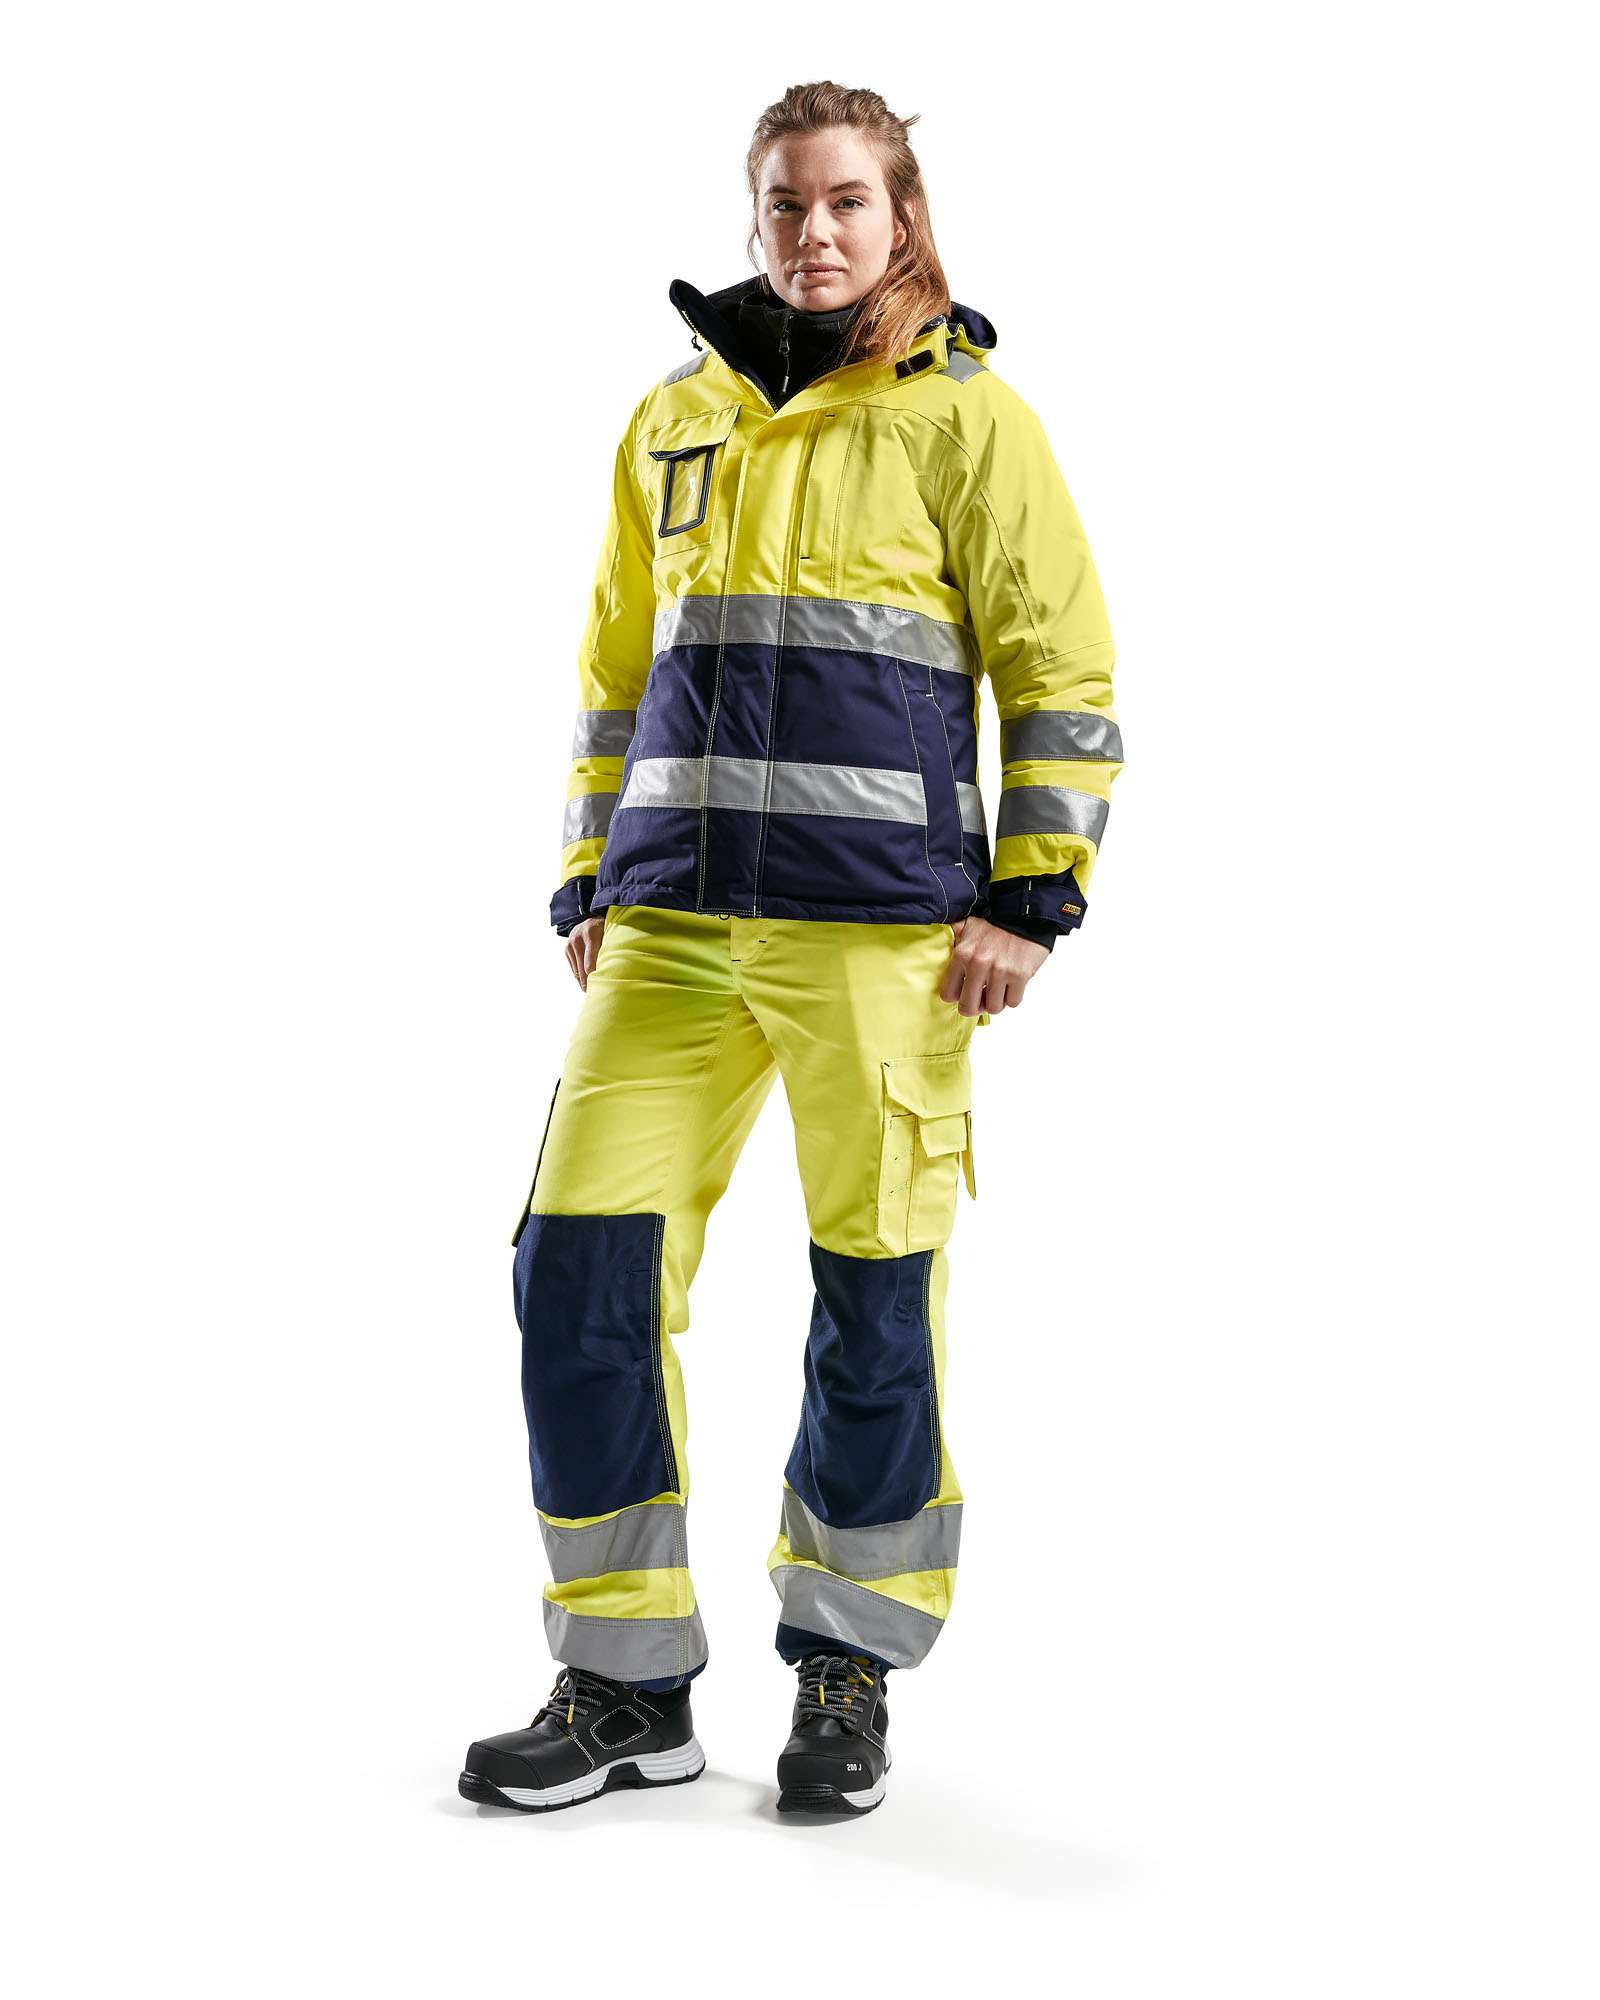 Blaklader Dames winterjacks 48721987 High Vis geel-marineblauw(3389)